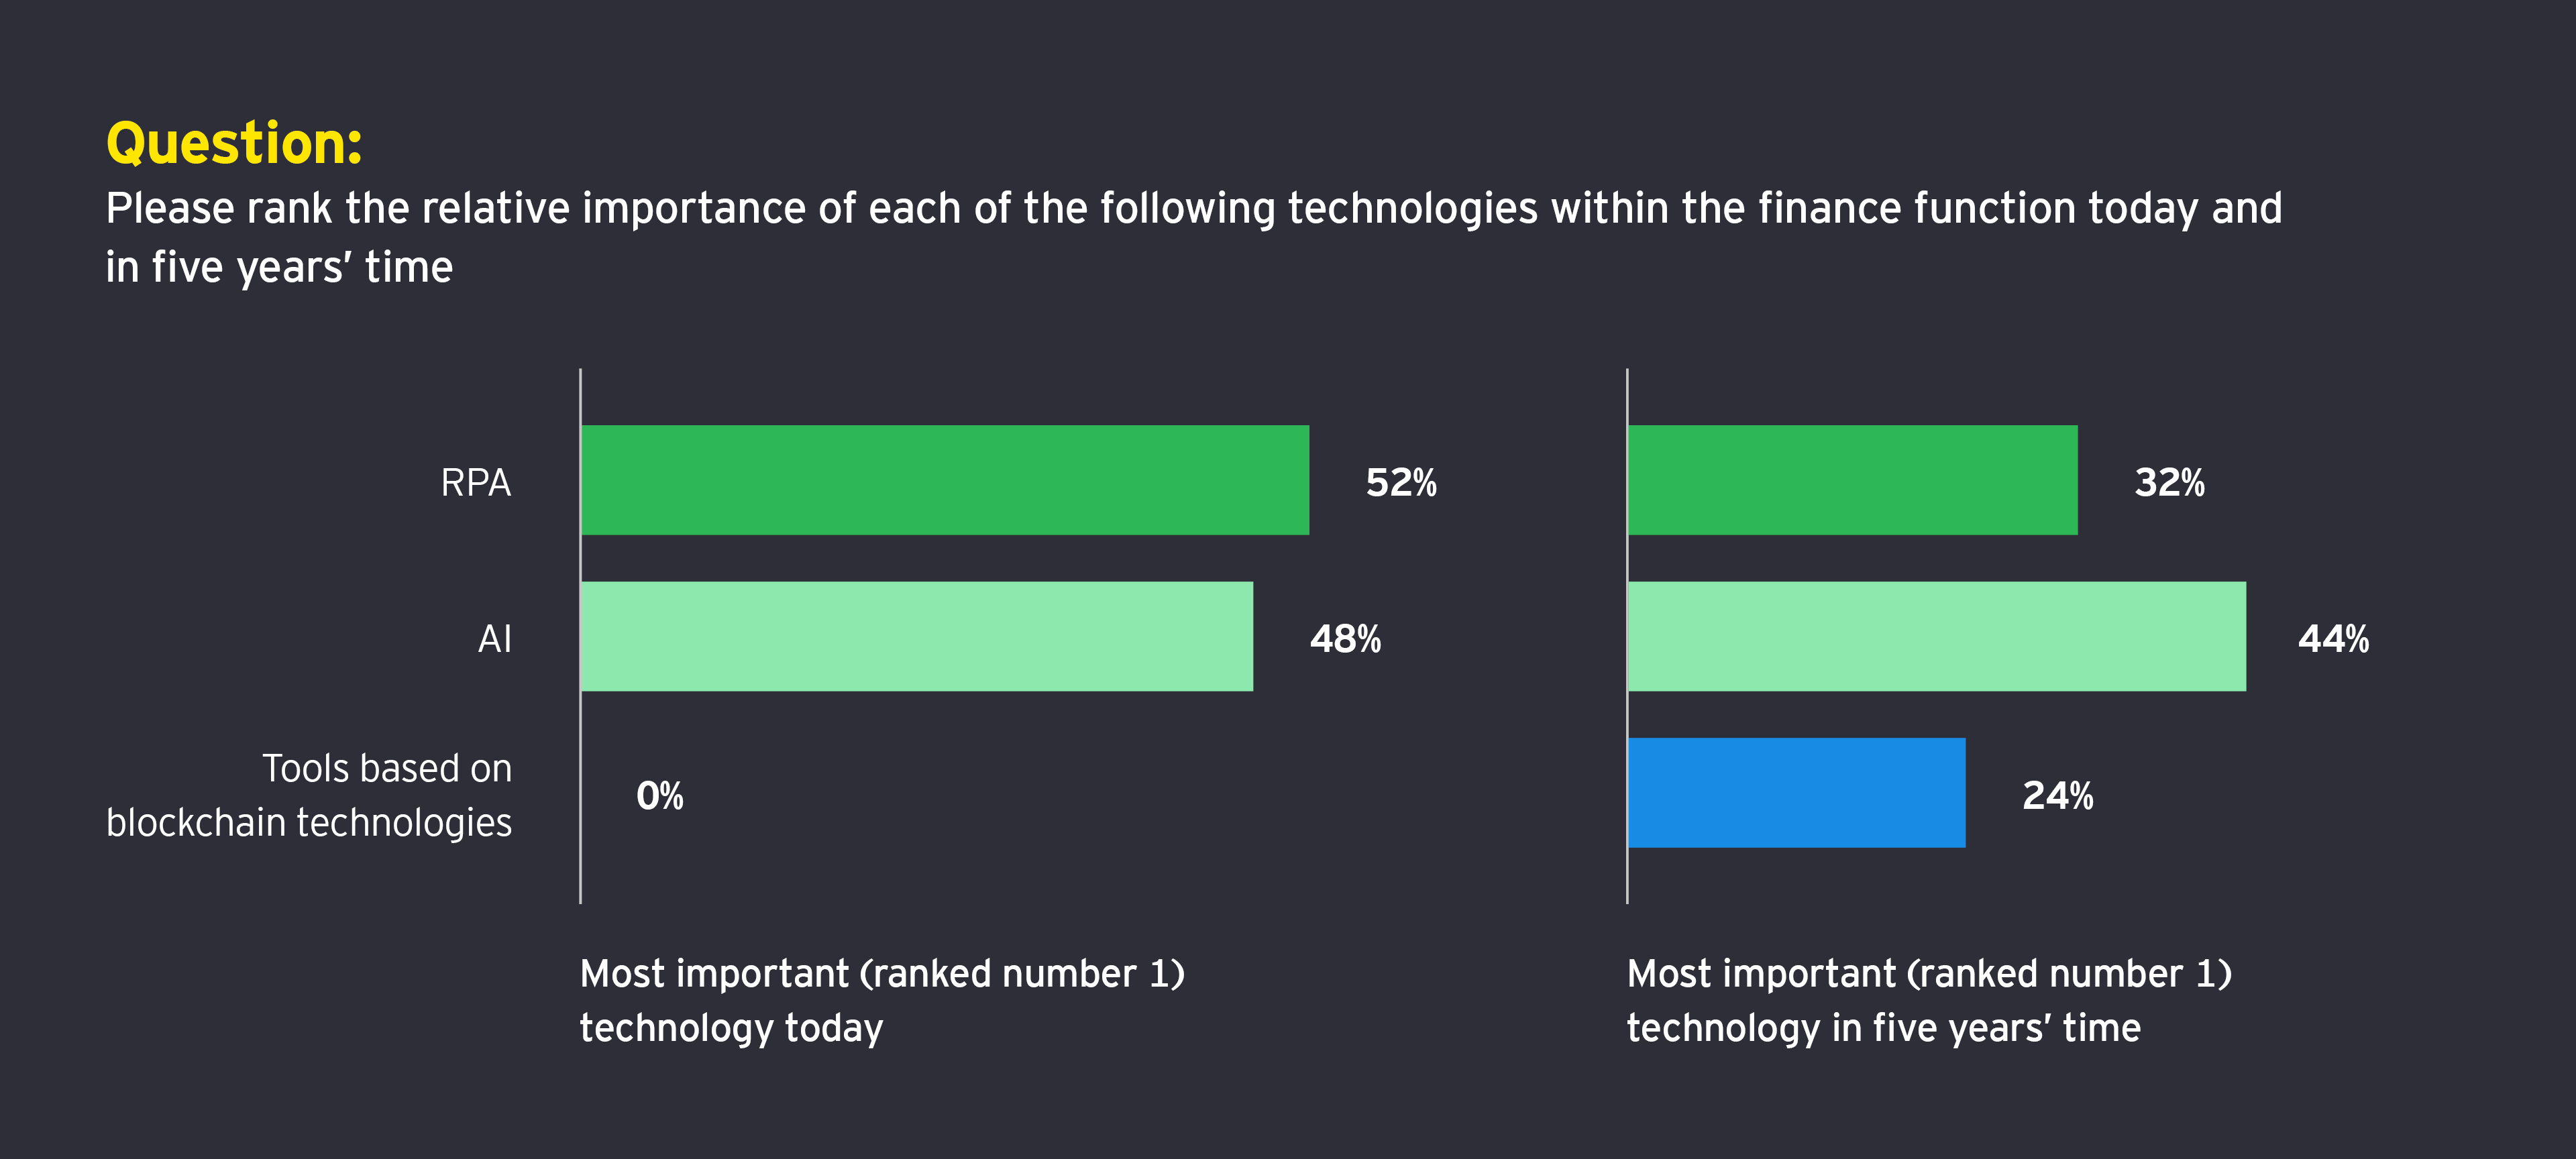 Question: Please rank the relative importance of each of the following technologies within the finance function today and in five years' time